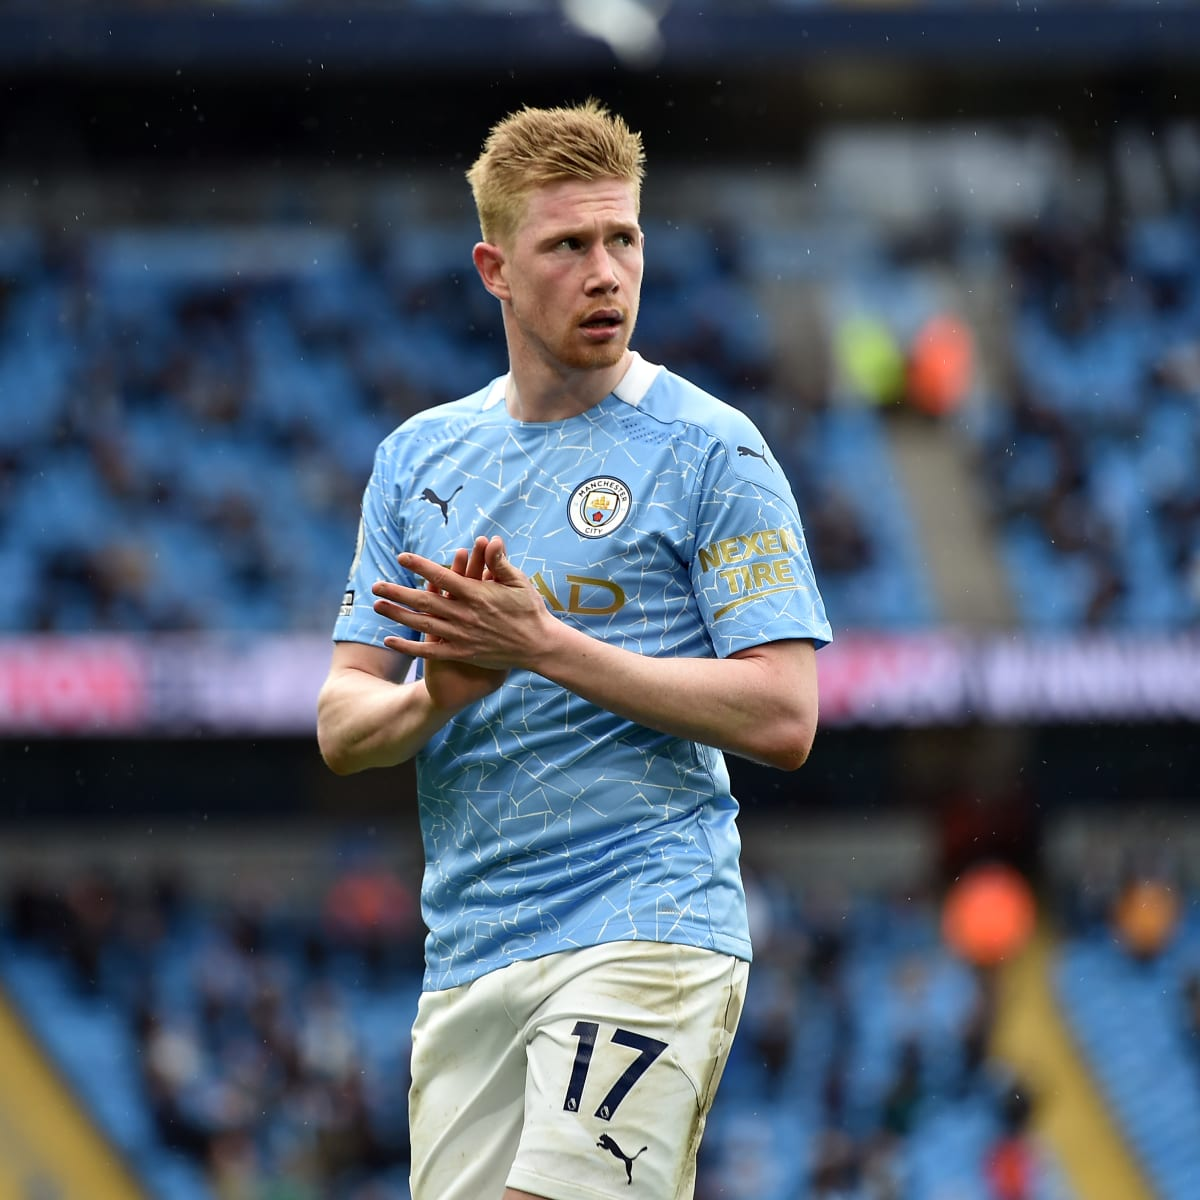 Kevin De Bruyne Says Man City Players Could Be Branded As 'Failures' If  They Lose The Champions League Final - Sports Illustrated Manchester City  News, Analysis and More